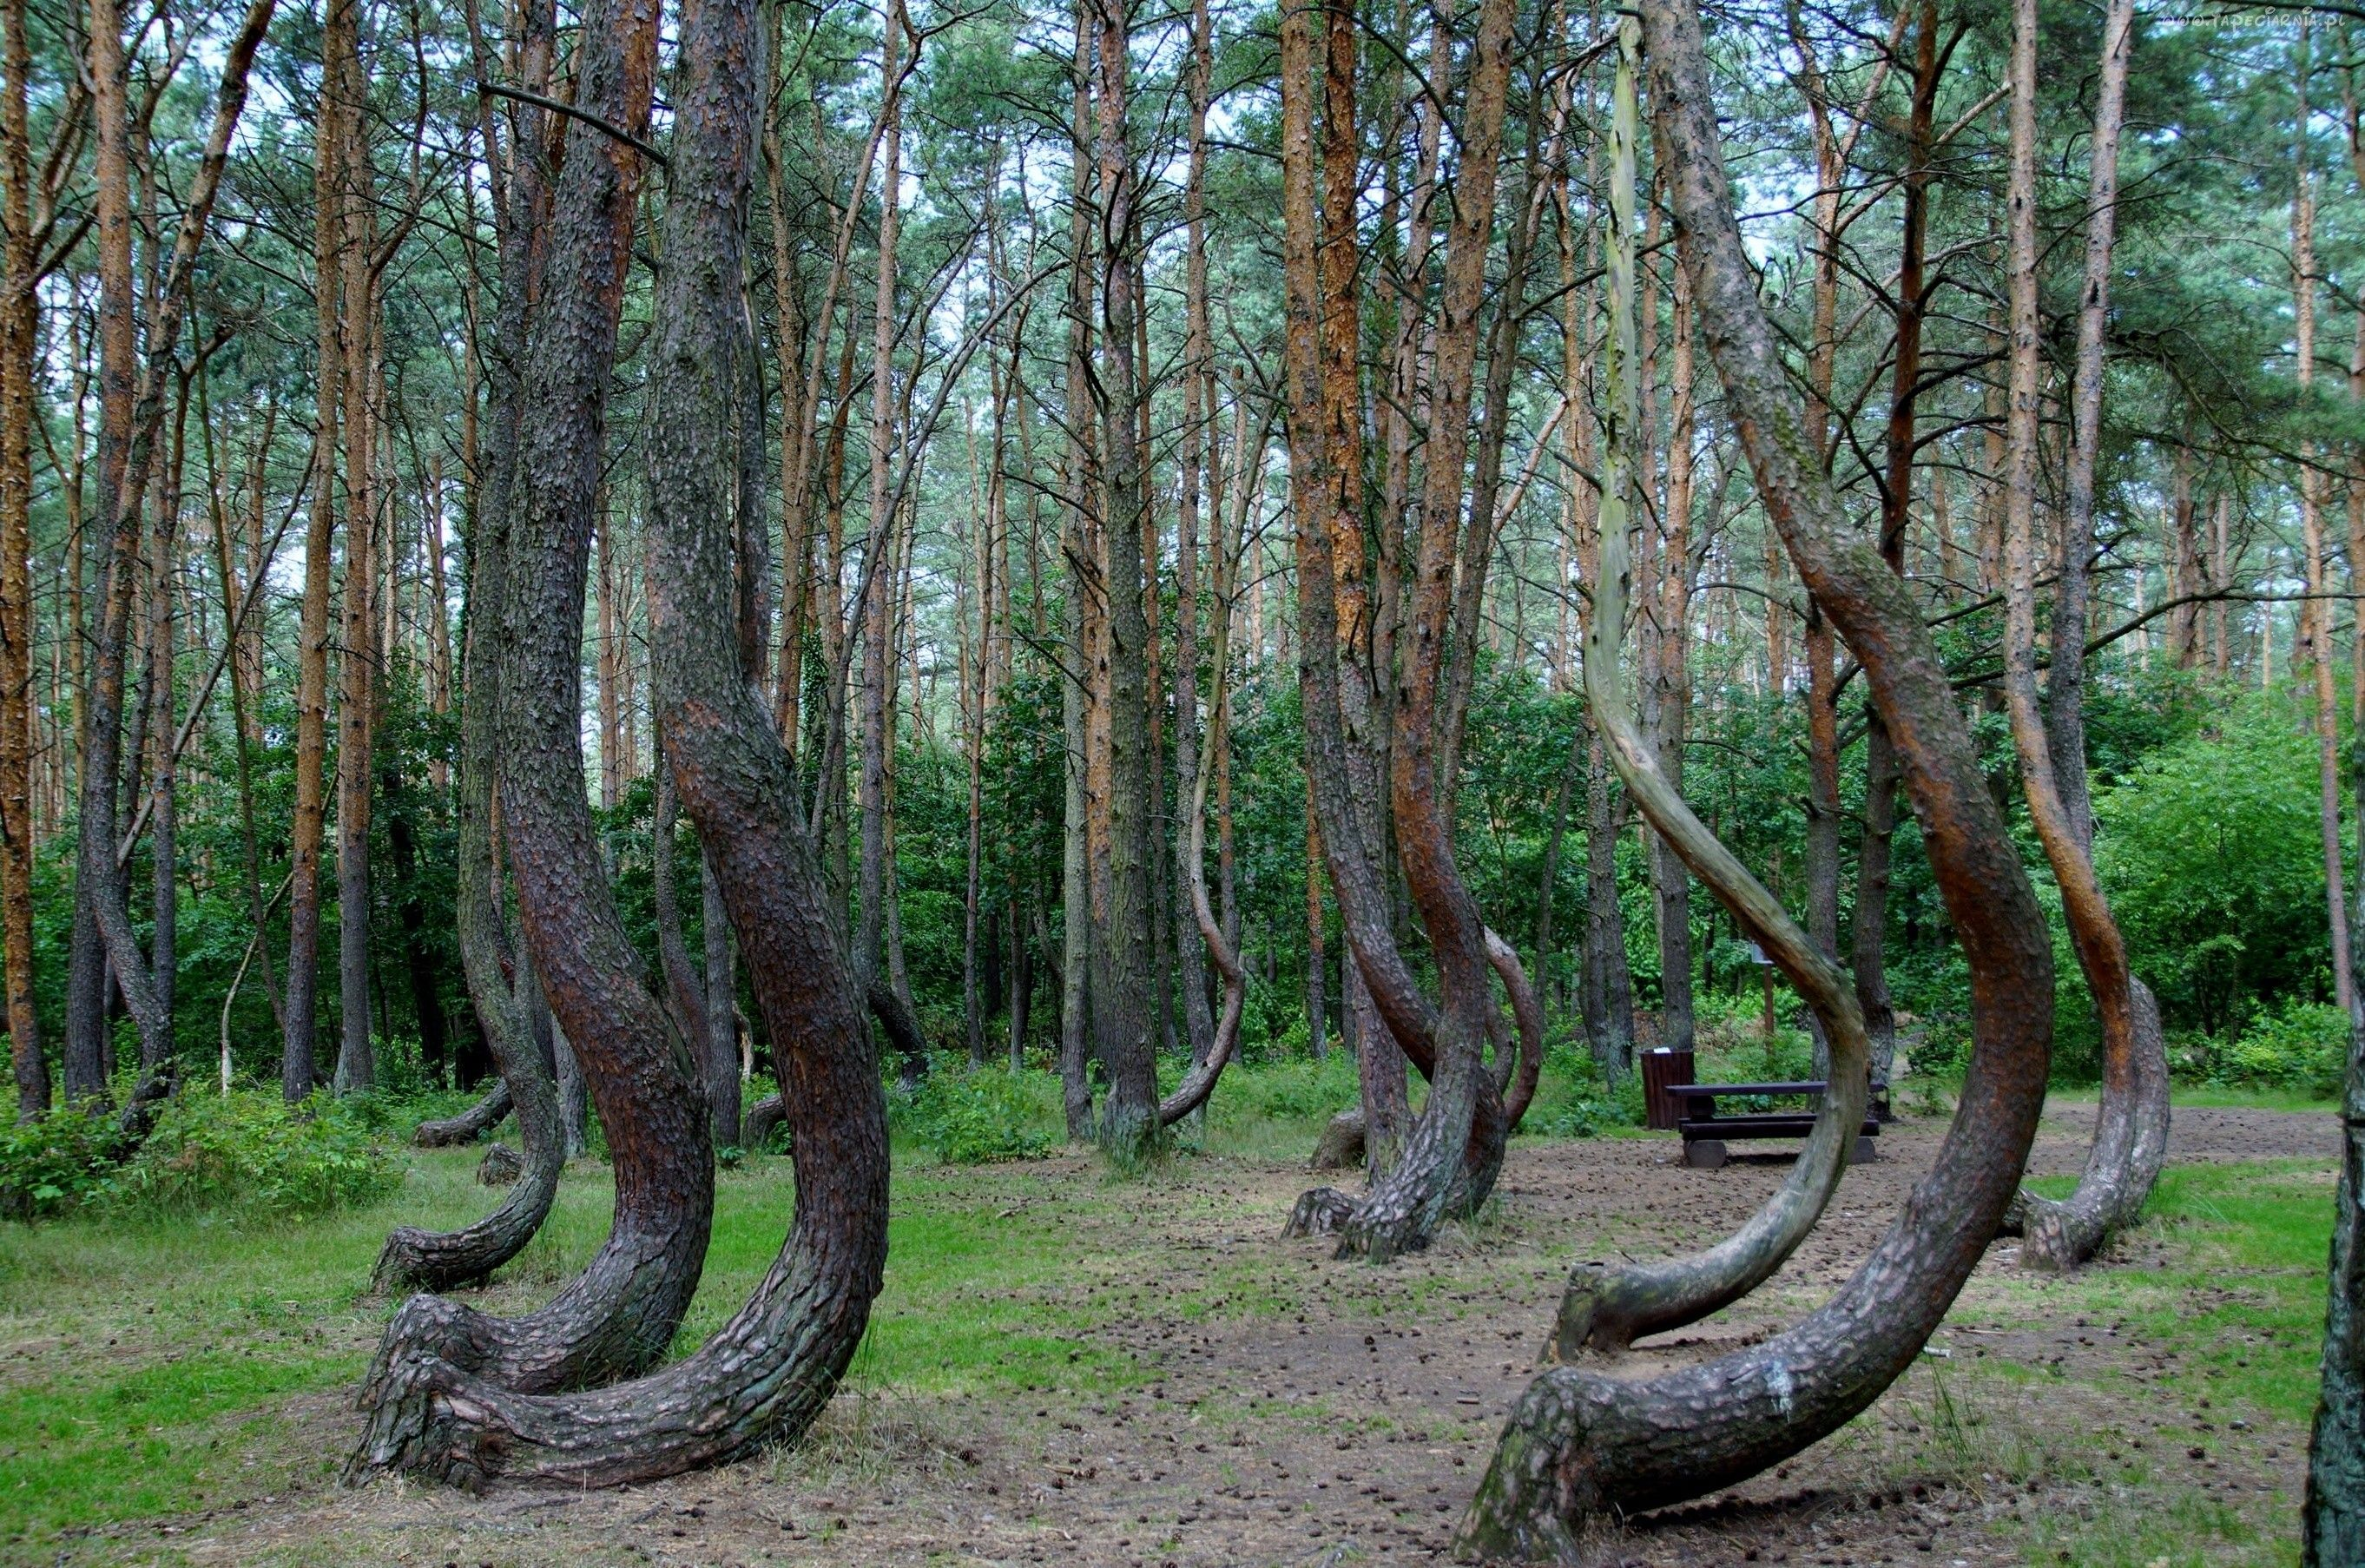 Krzywy Las Polska Nowe Czarnowo Sosny Tapeciarnia Pl Las - To this day the mystery of polands crooked forest remains unexplained